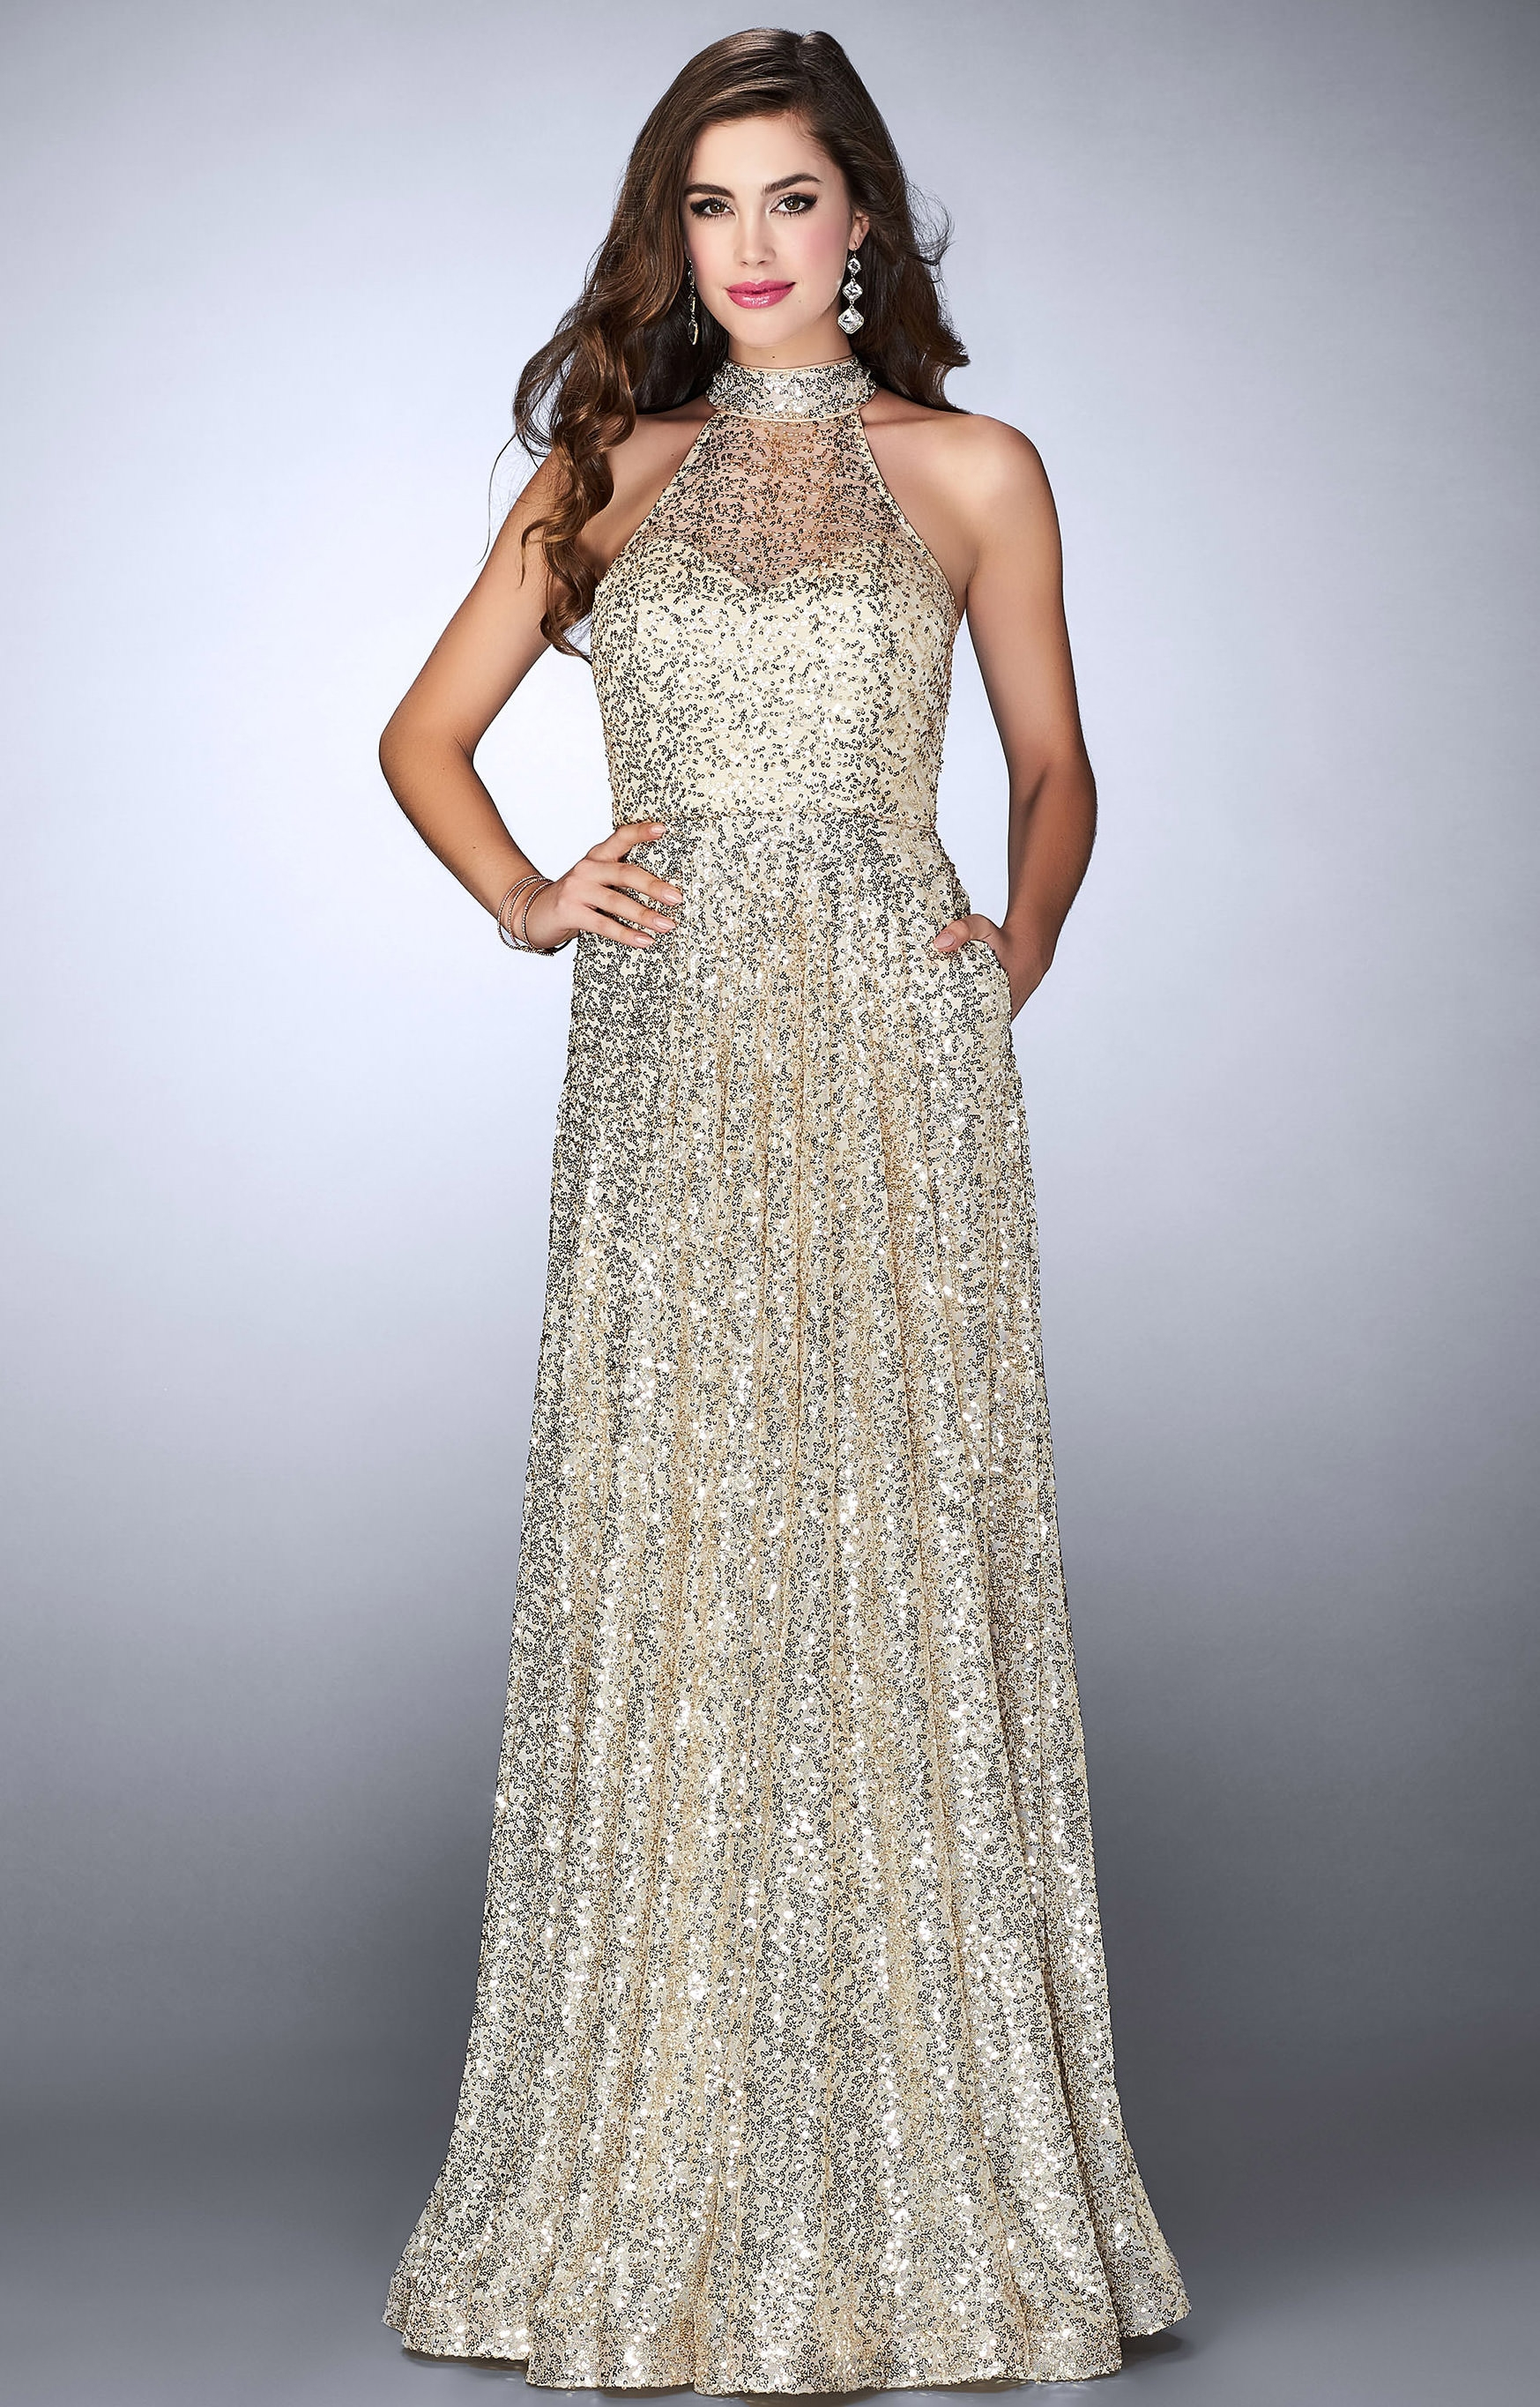 La Femme 24584 Sleeveless Halter Sequined A Line With